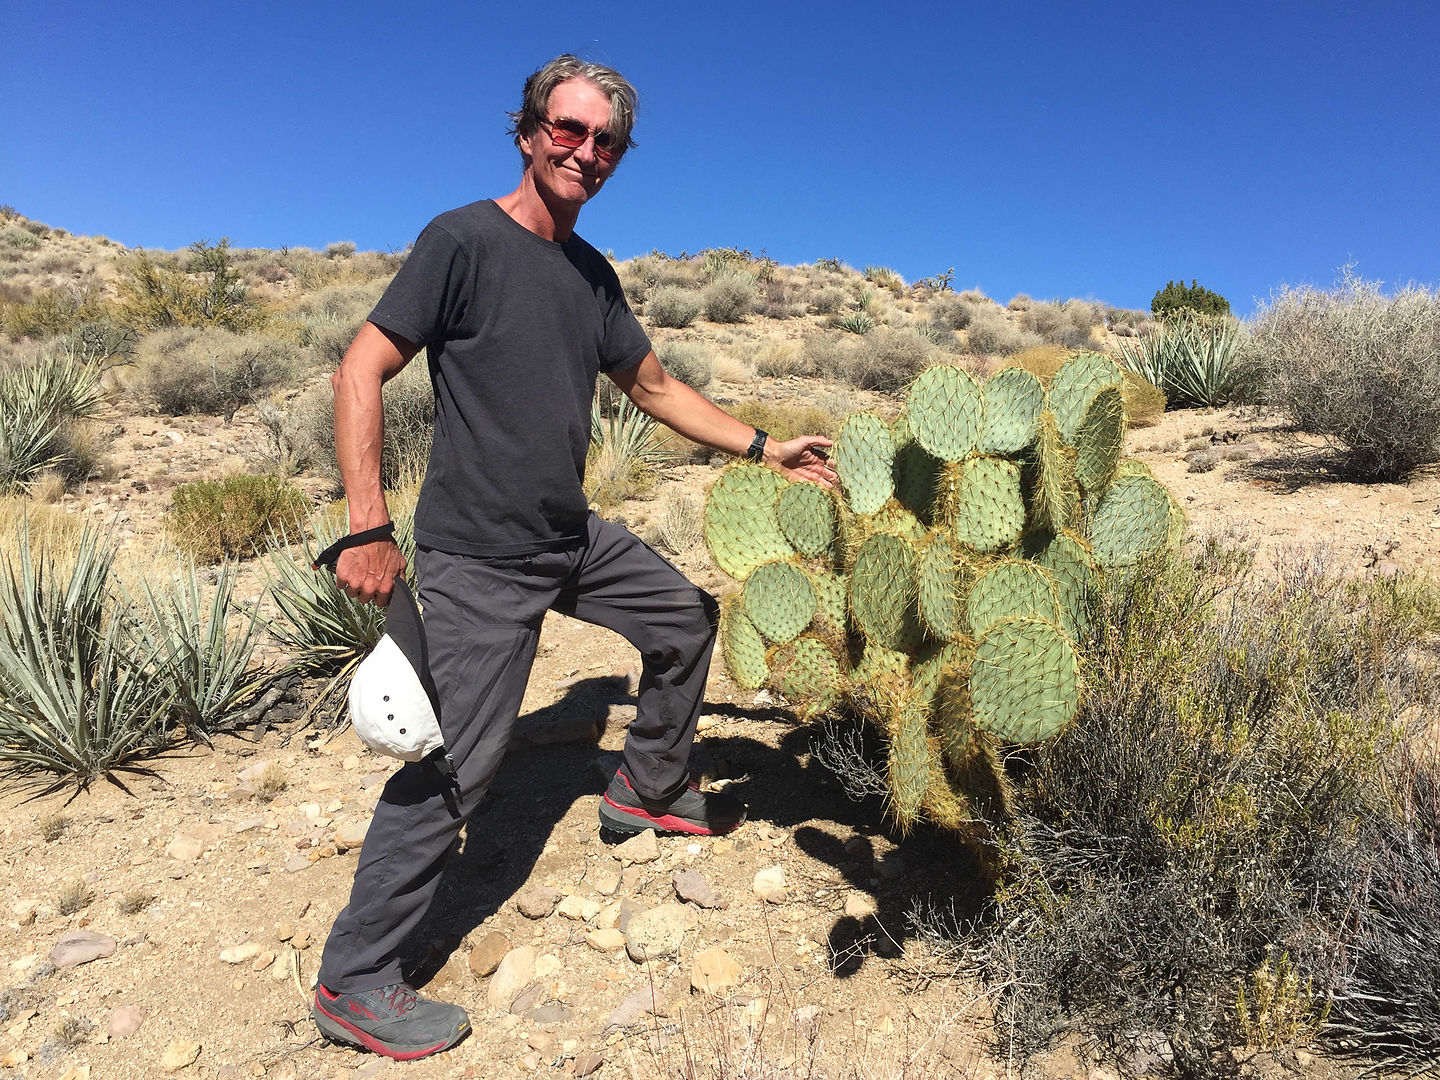 Herb making friends with the cacti on the Rock Spring Loop